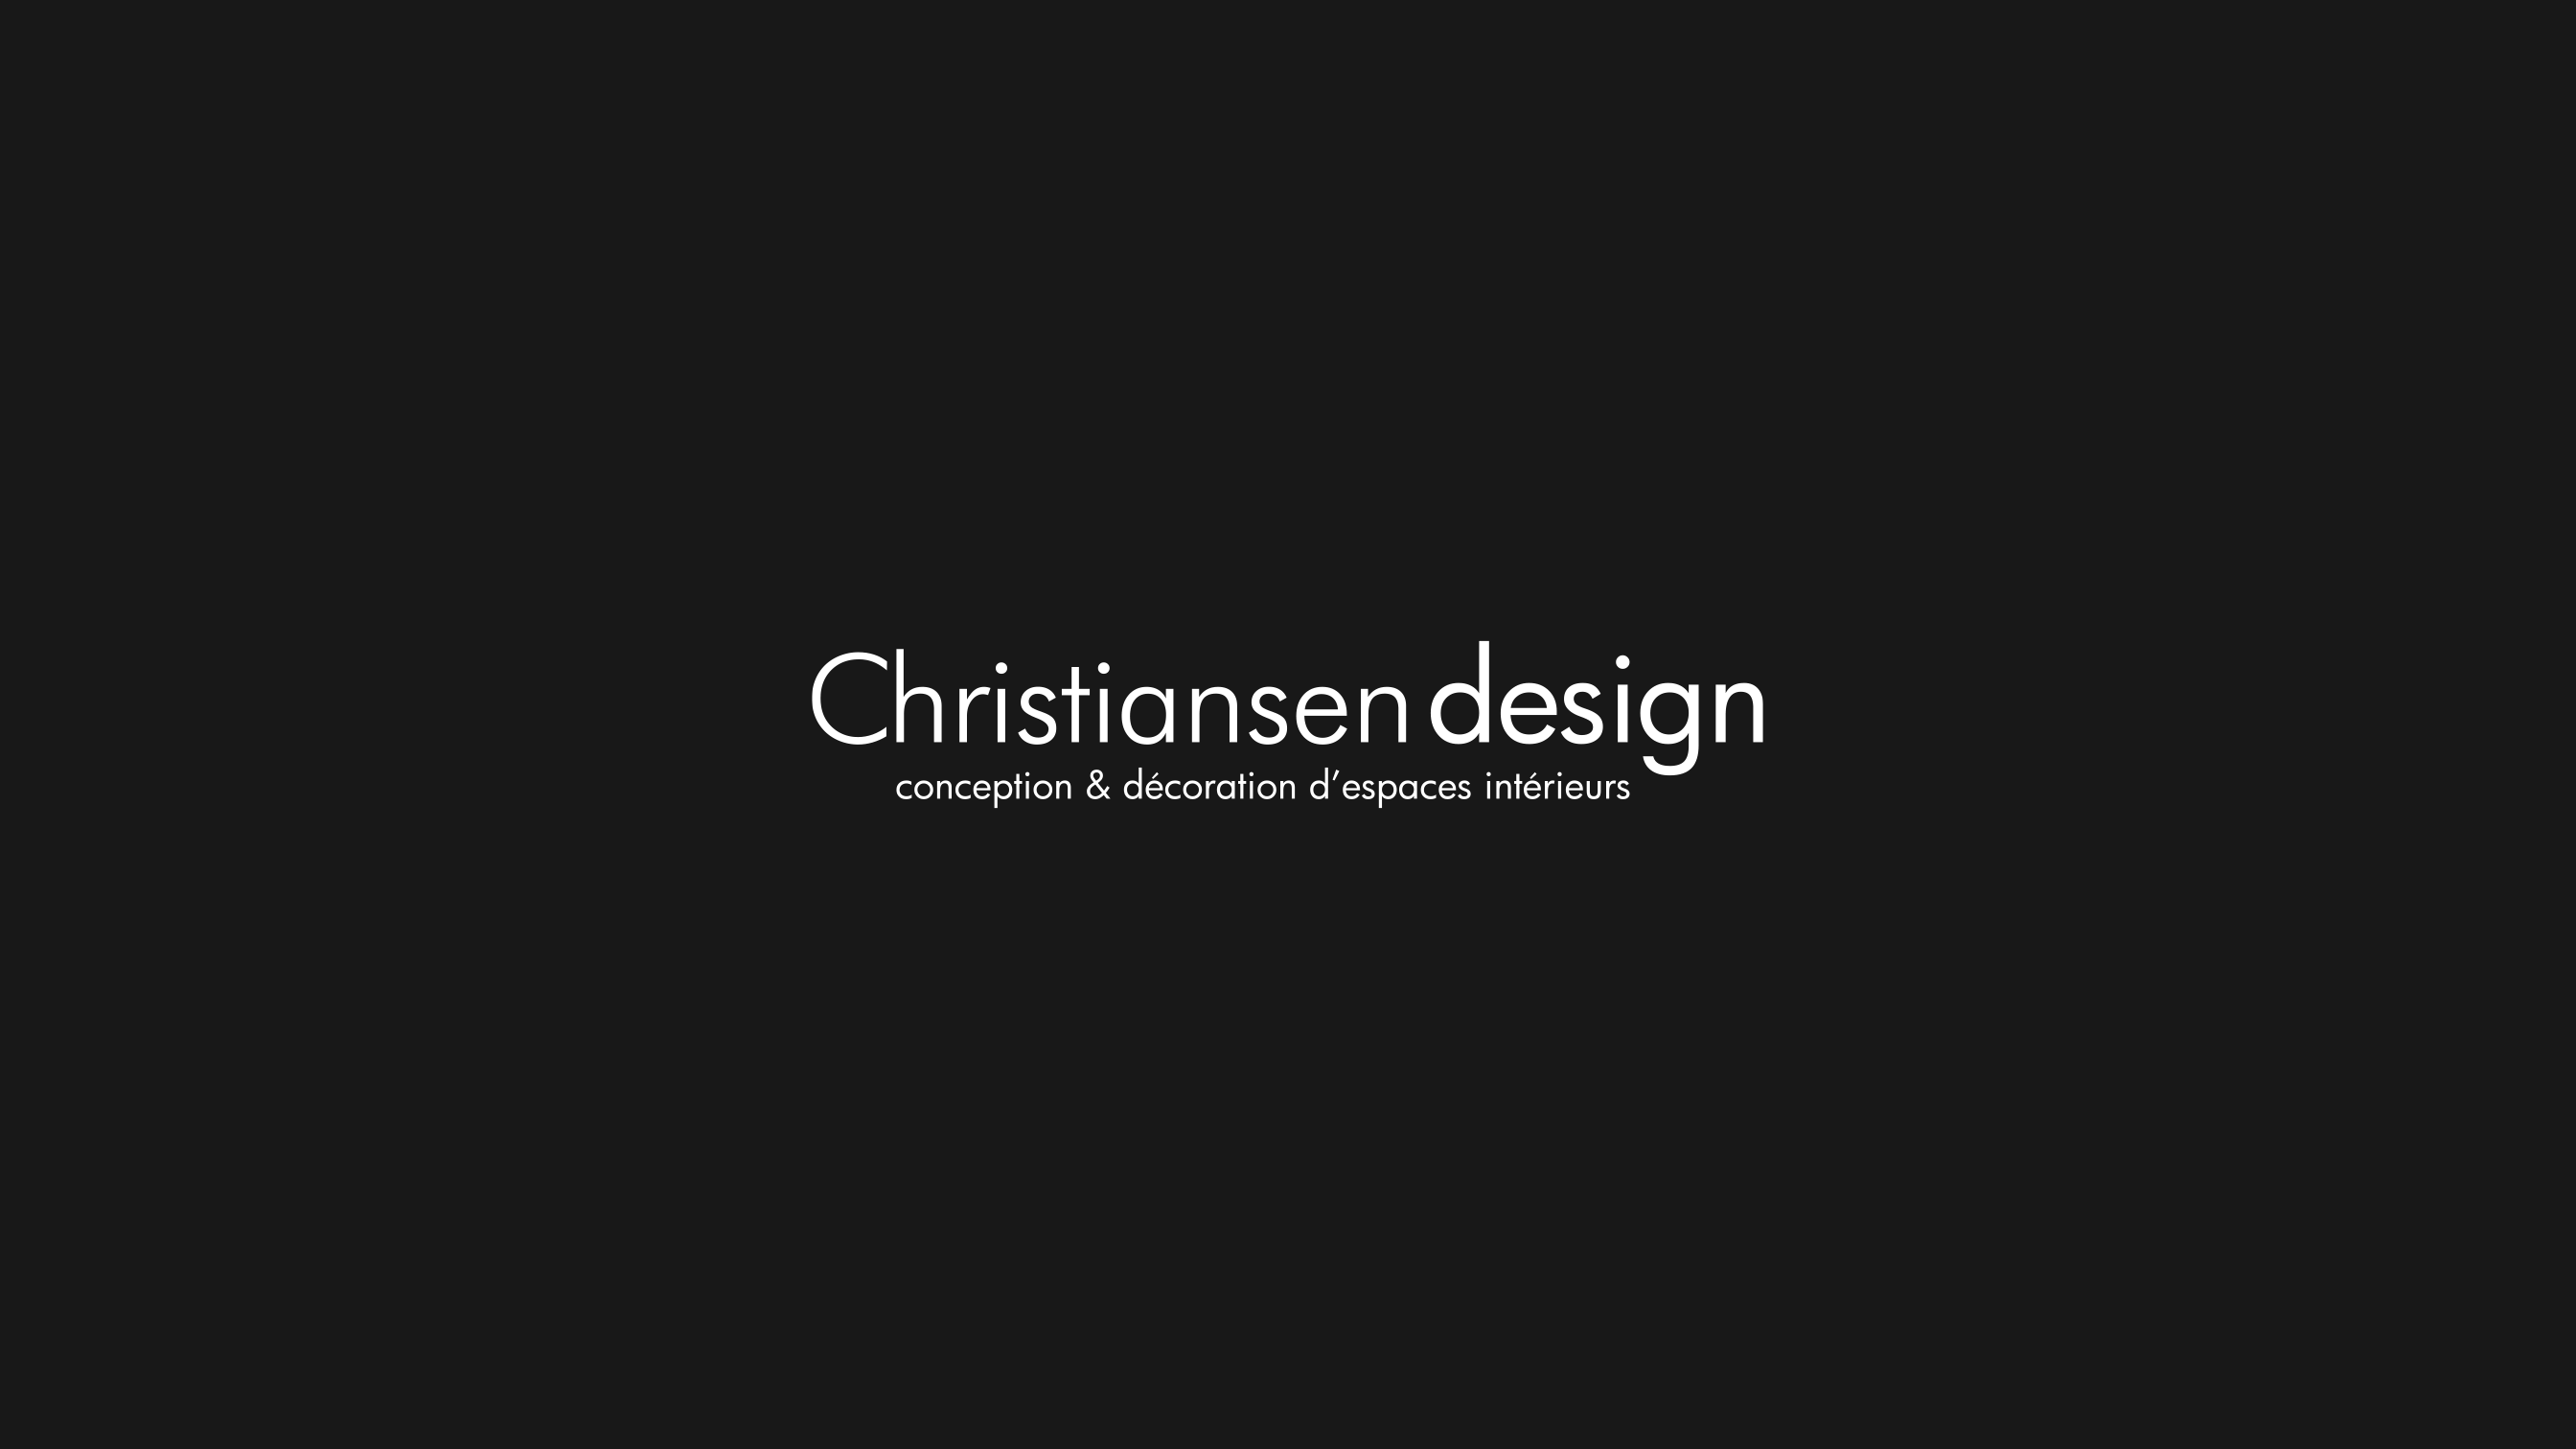 showcase-logotype-christiansen